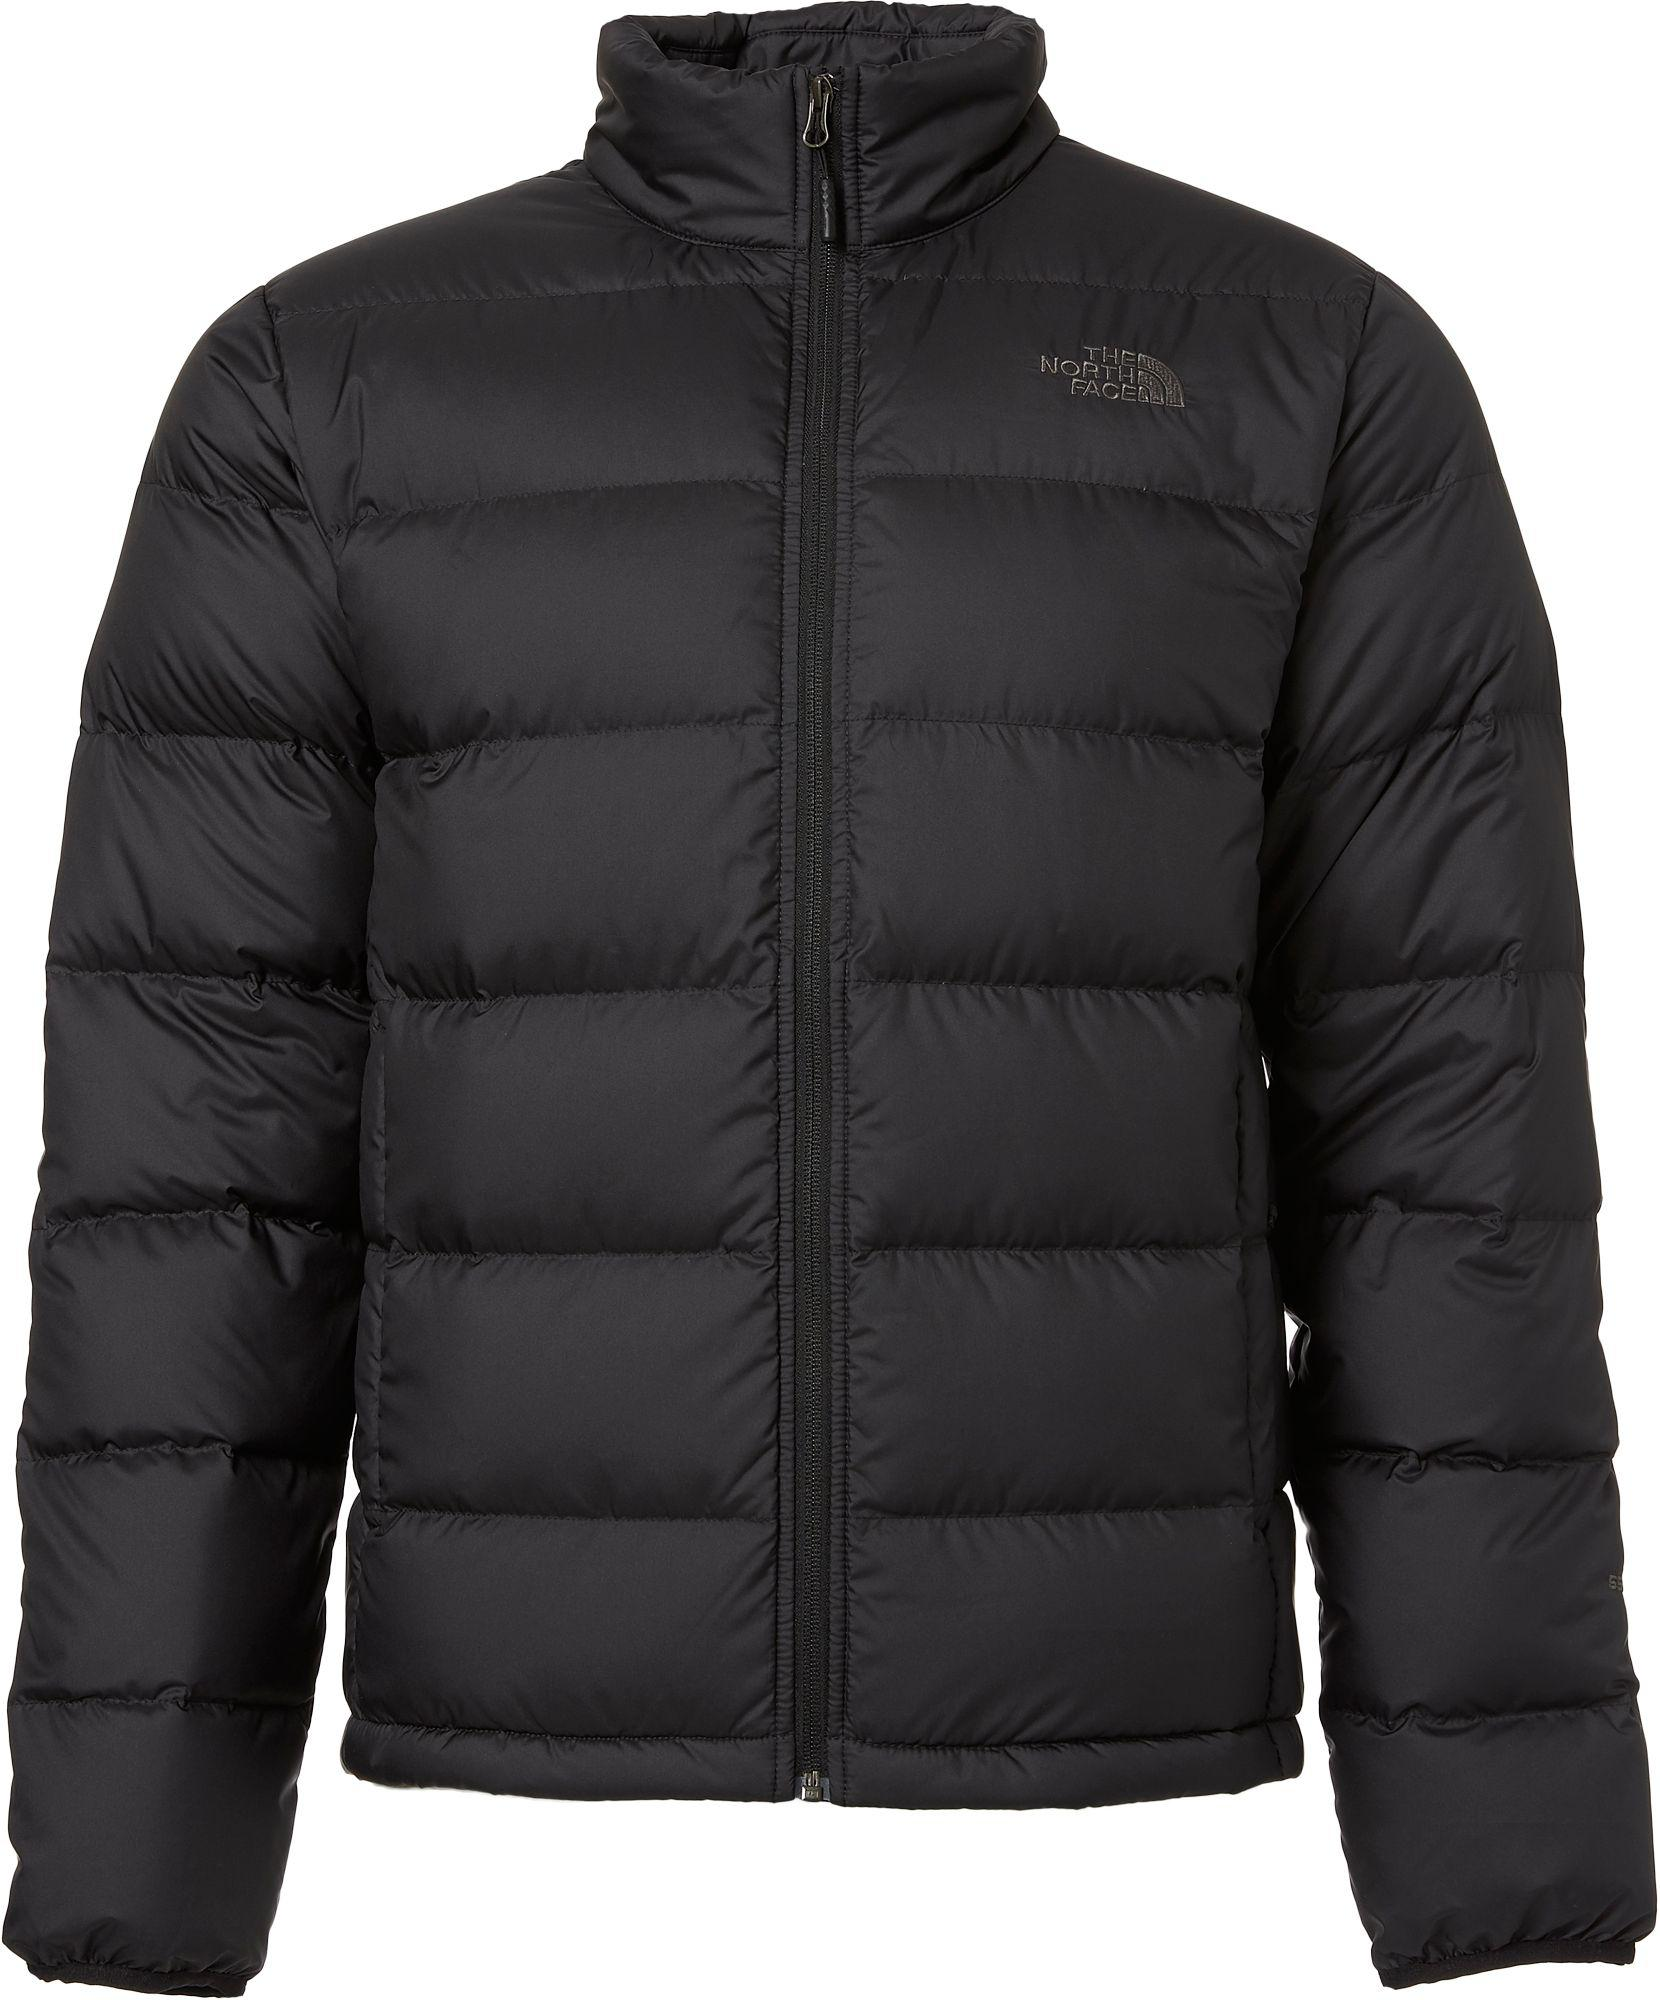 89541cdb84f The North Face Black Alpz Down Jacket for men